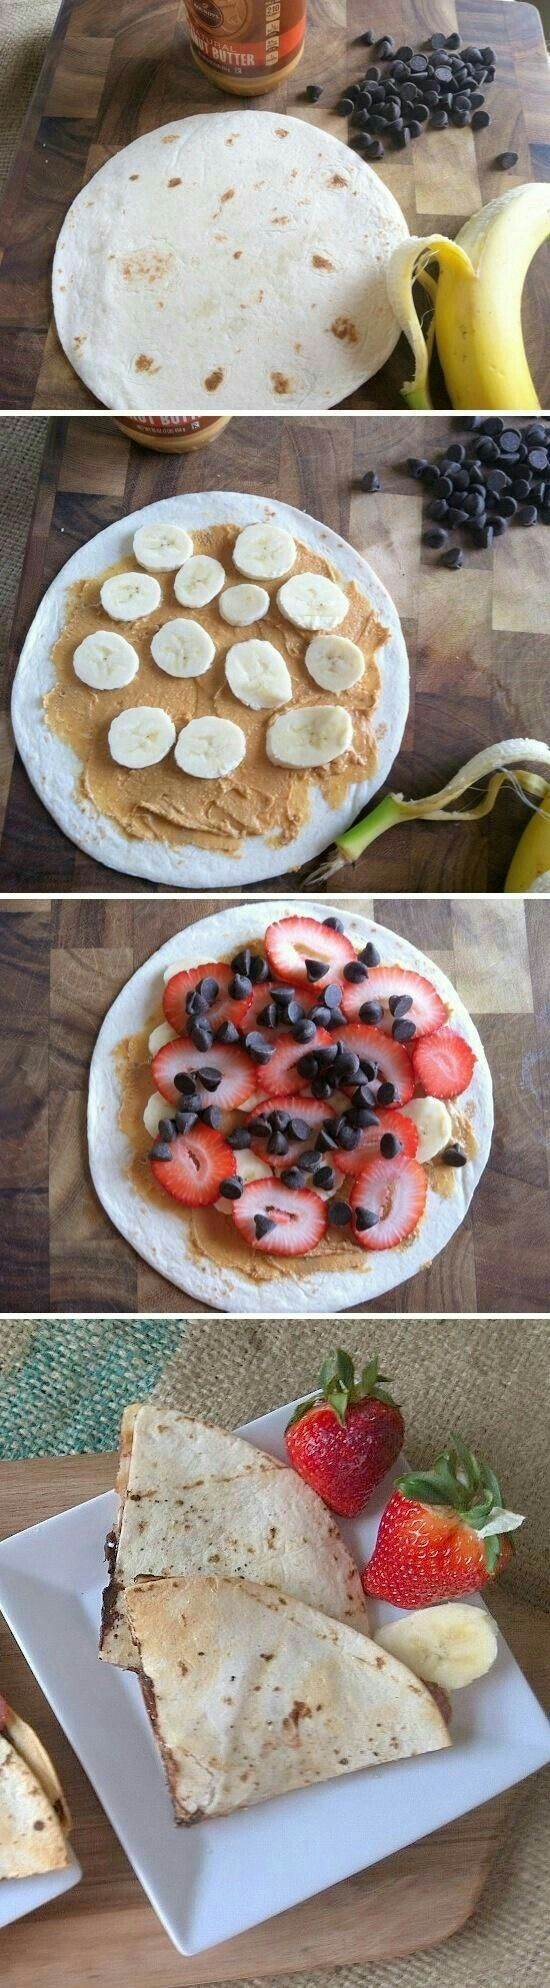 Vegan chocolate with fruit and syrup